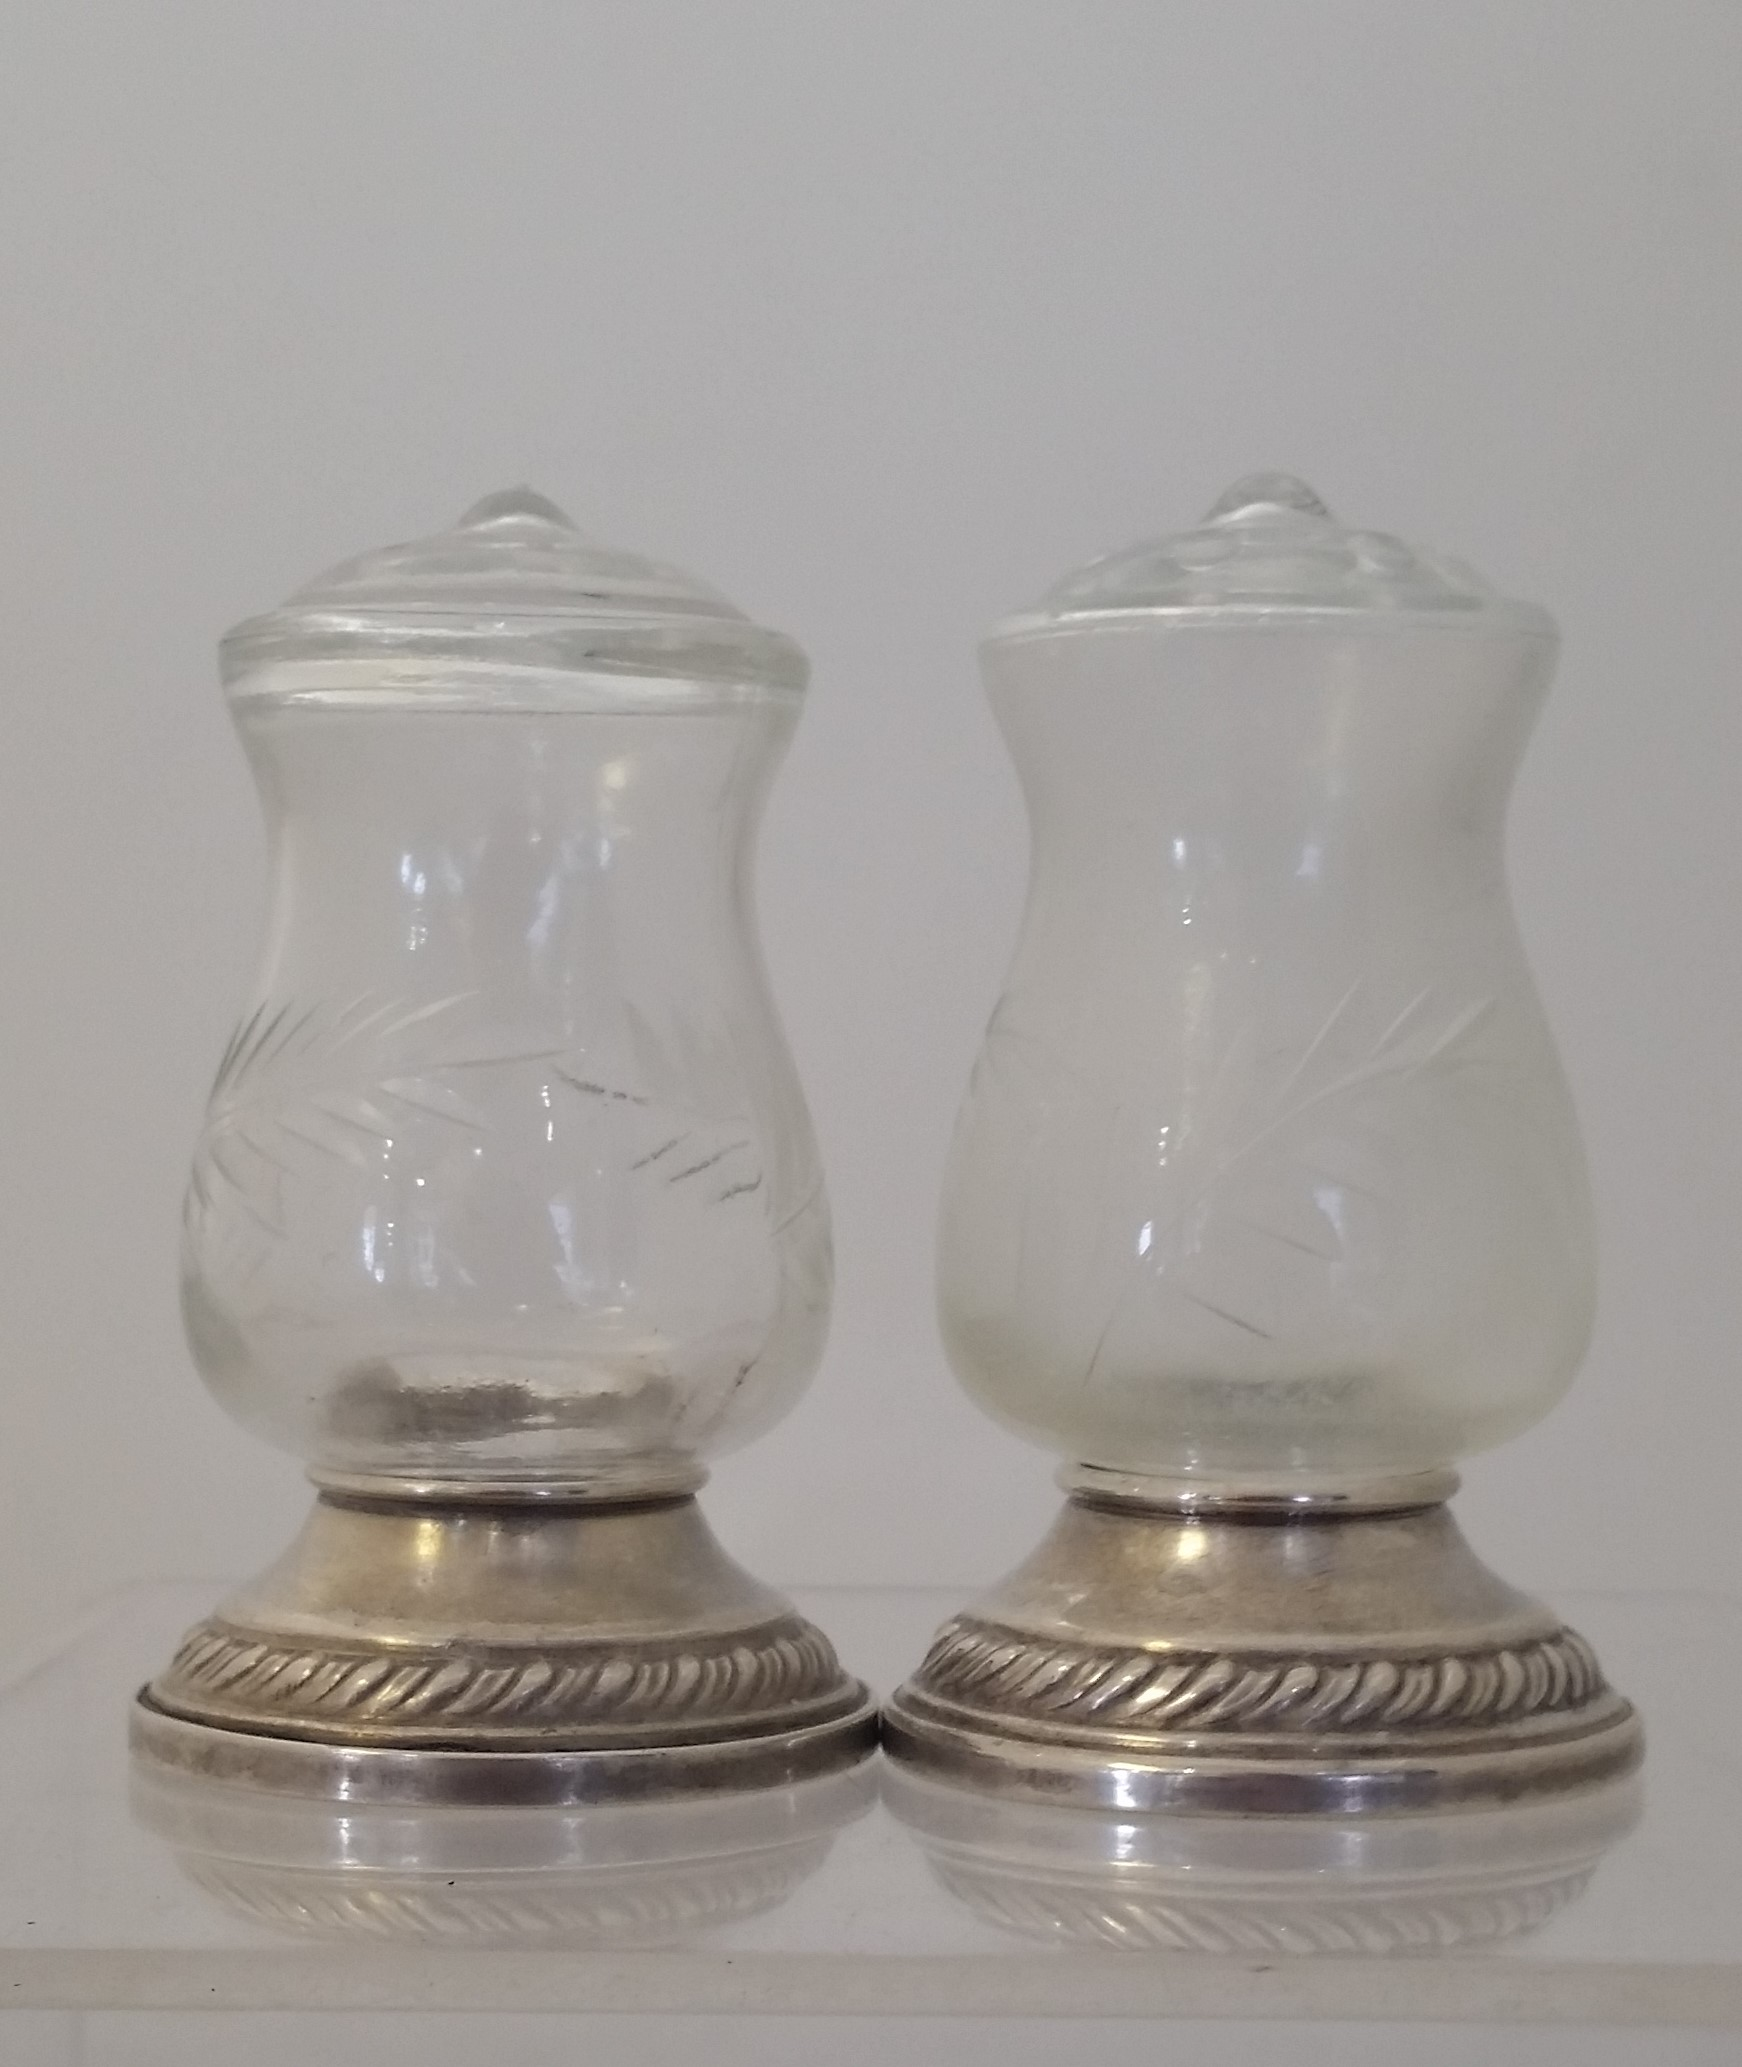 Newport - 'Quaker Hurricane' - Salt & Pepper Shakers (pair)as is